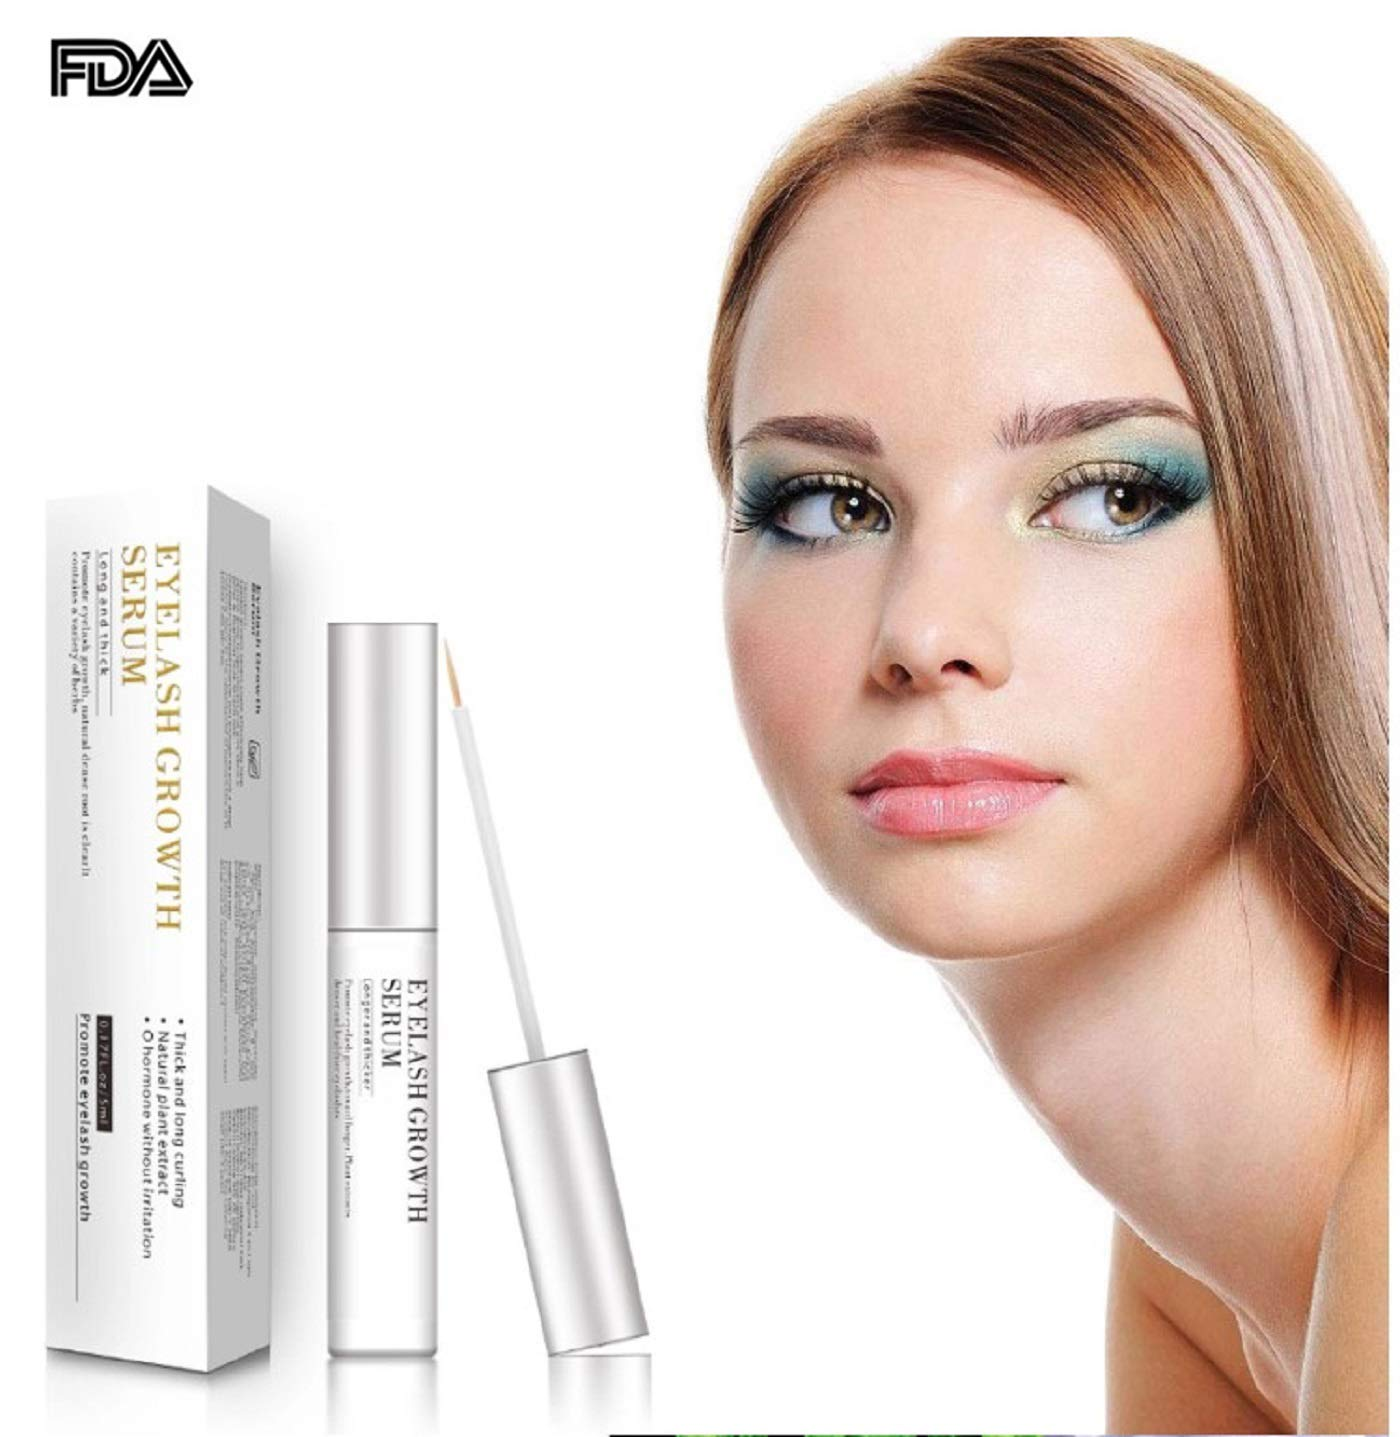 331b5e9008f Amazon.com: Eyelash Growth Serum lash Growth Serum for Eyelash and Eyebrow  Growth Enhancer Eyelash Growth Liquid Rapid Growth grows Thicker Longer  Natural ...